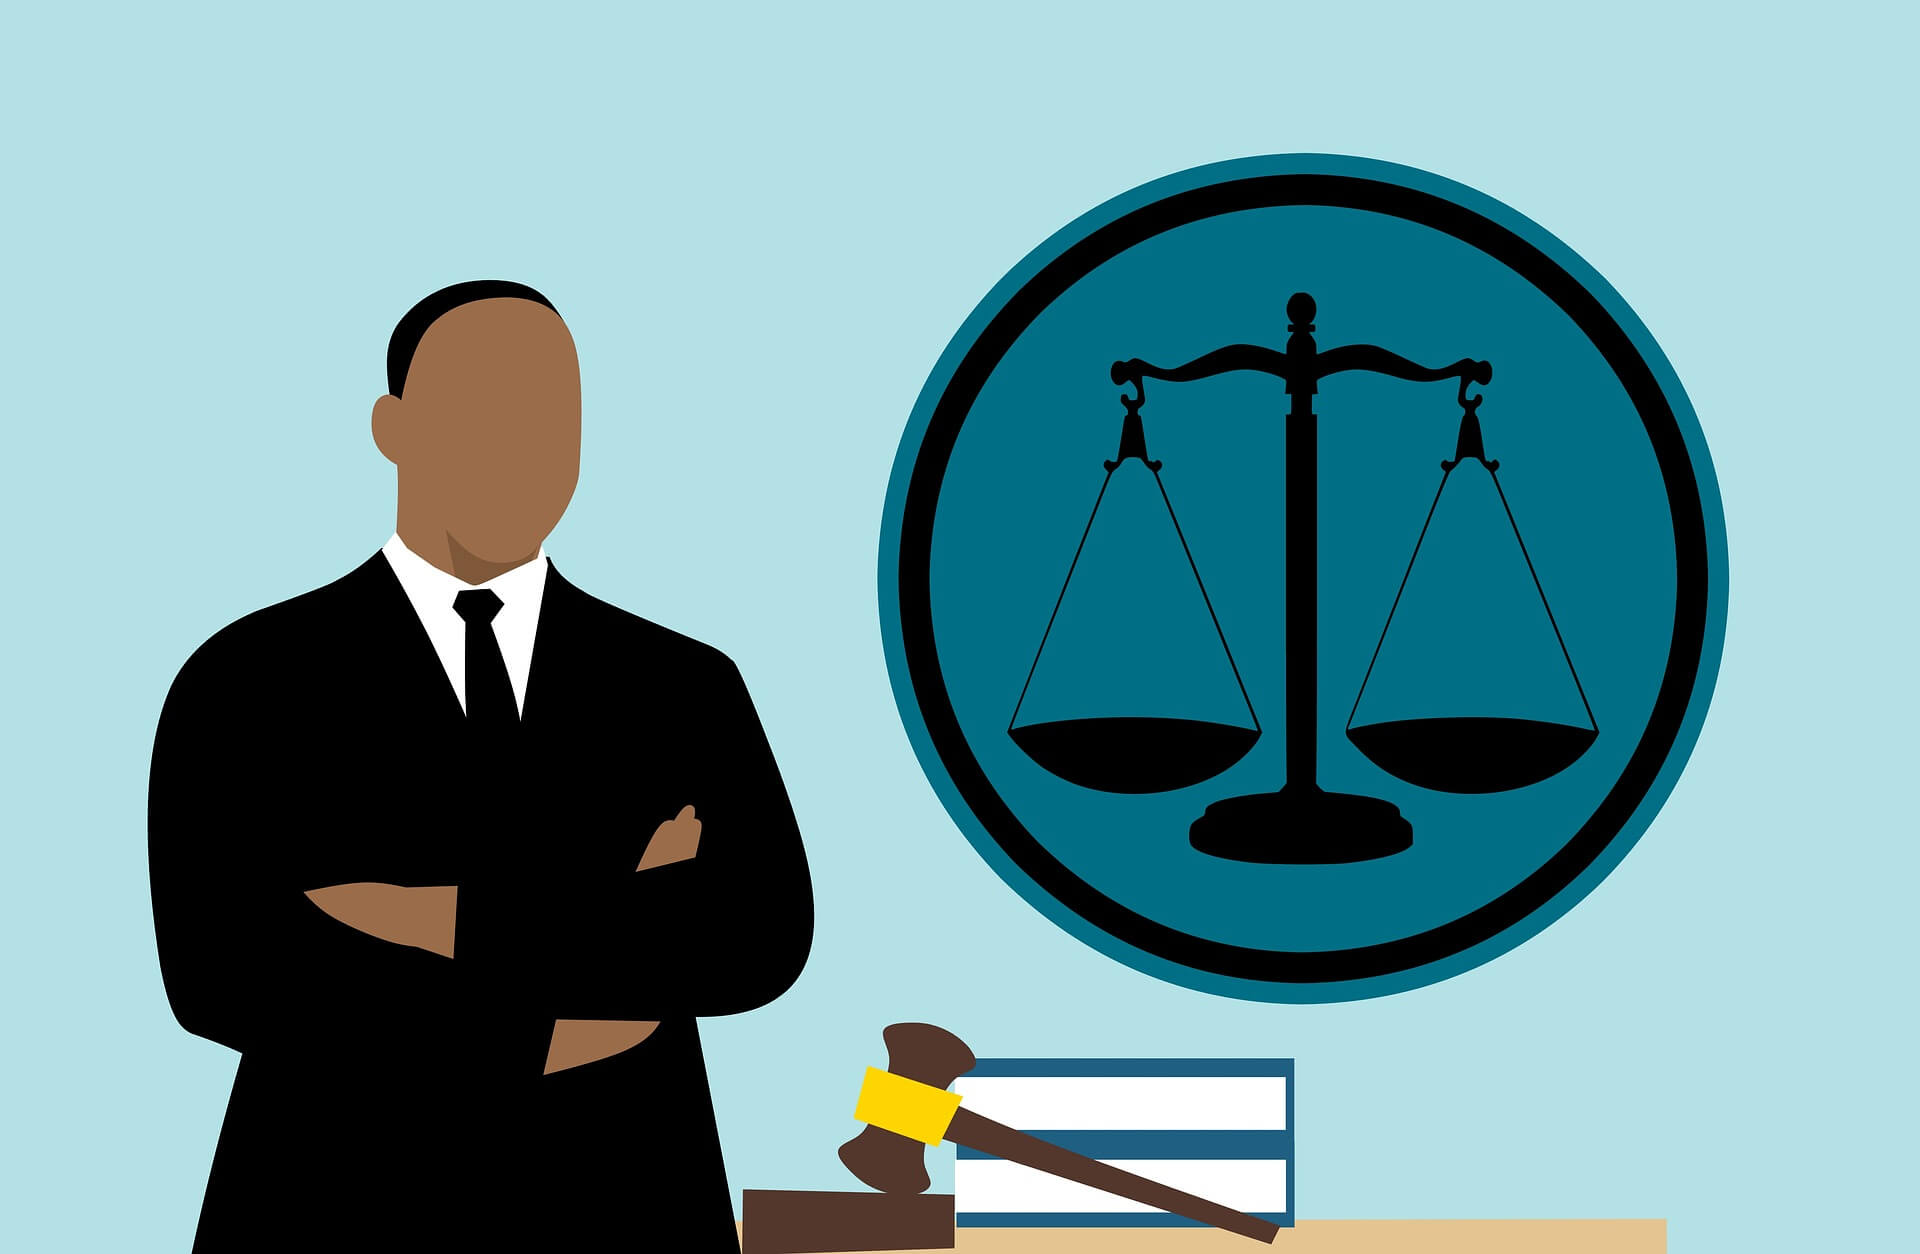 graphic of man in suit next to legal icon and gavel